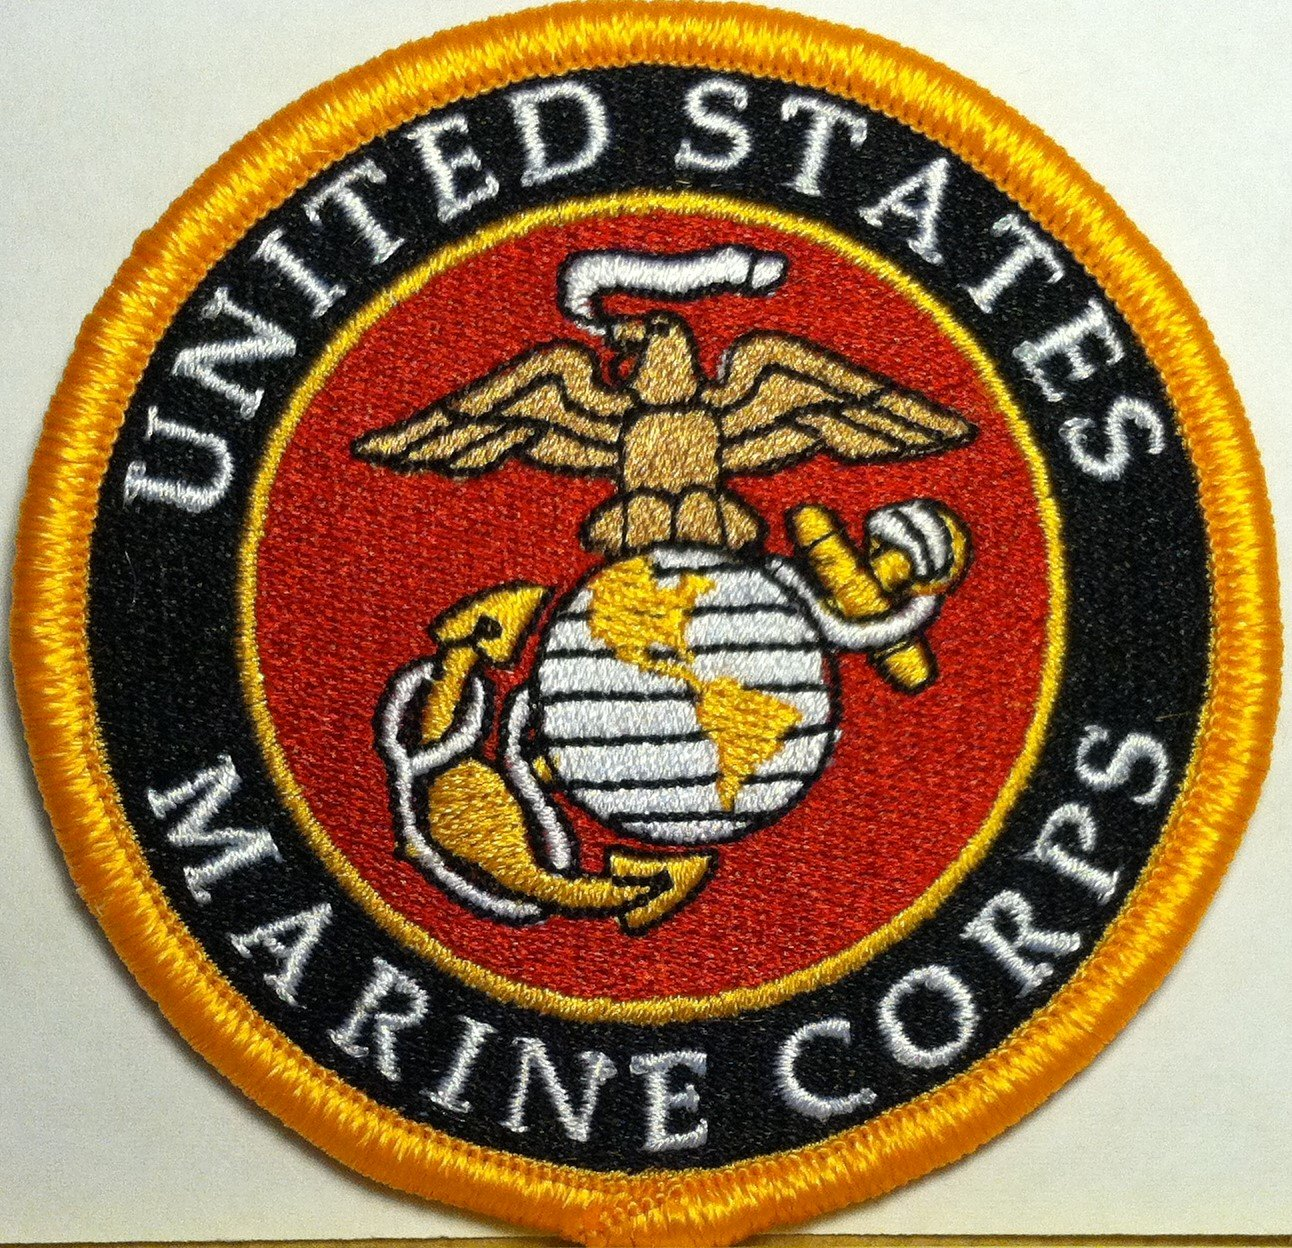 Amazon com United States Marine Corps Iron On Patch USMC Emblem Gold  BorderAmazon com United States Marine Corps Iron On Patch USMC EmblemMarine Corps Themed Room  Man cave bedroom Bedroom at Real  . Marine Corps Themed Room. Home Design Ideas